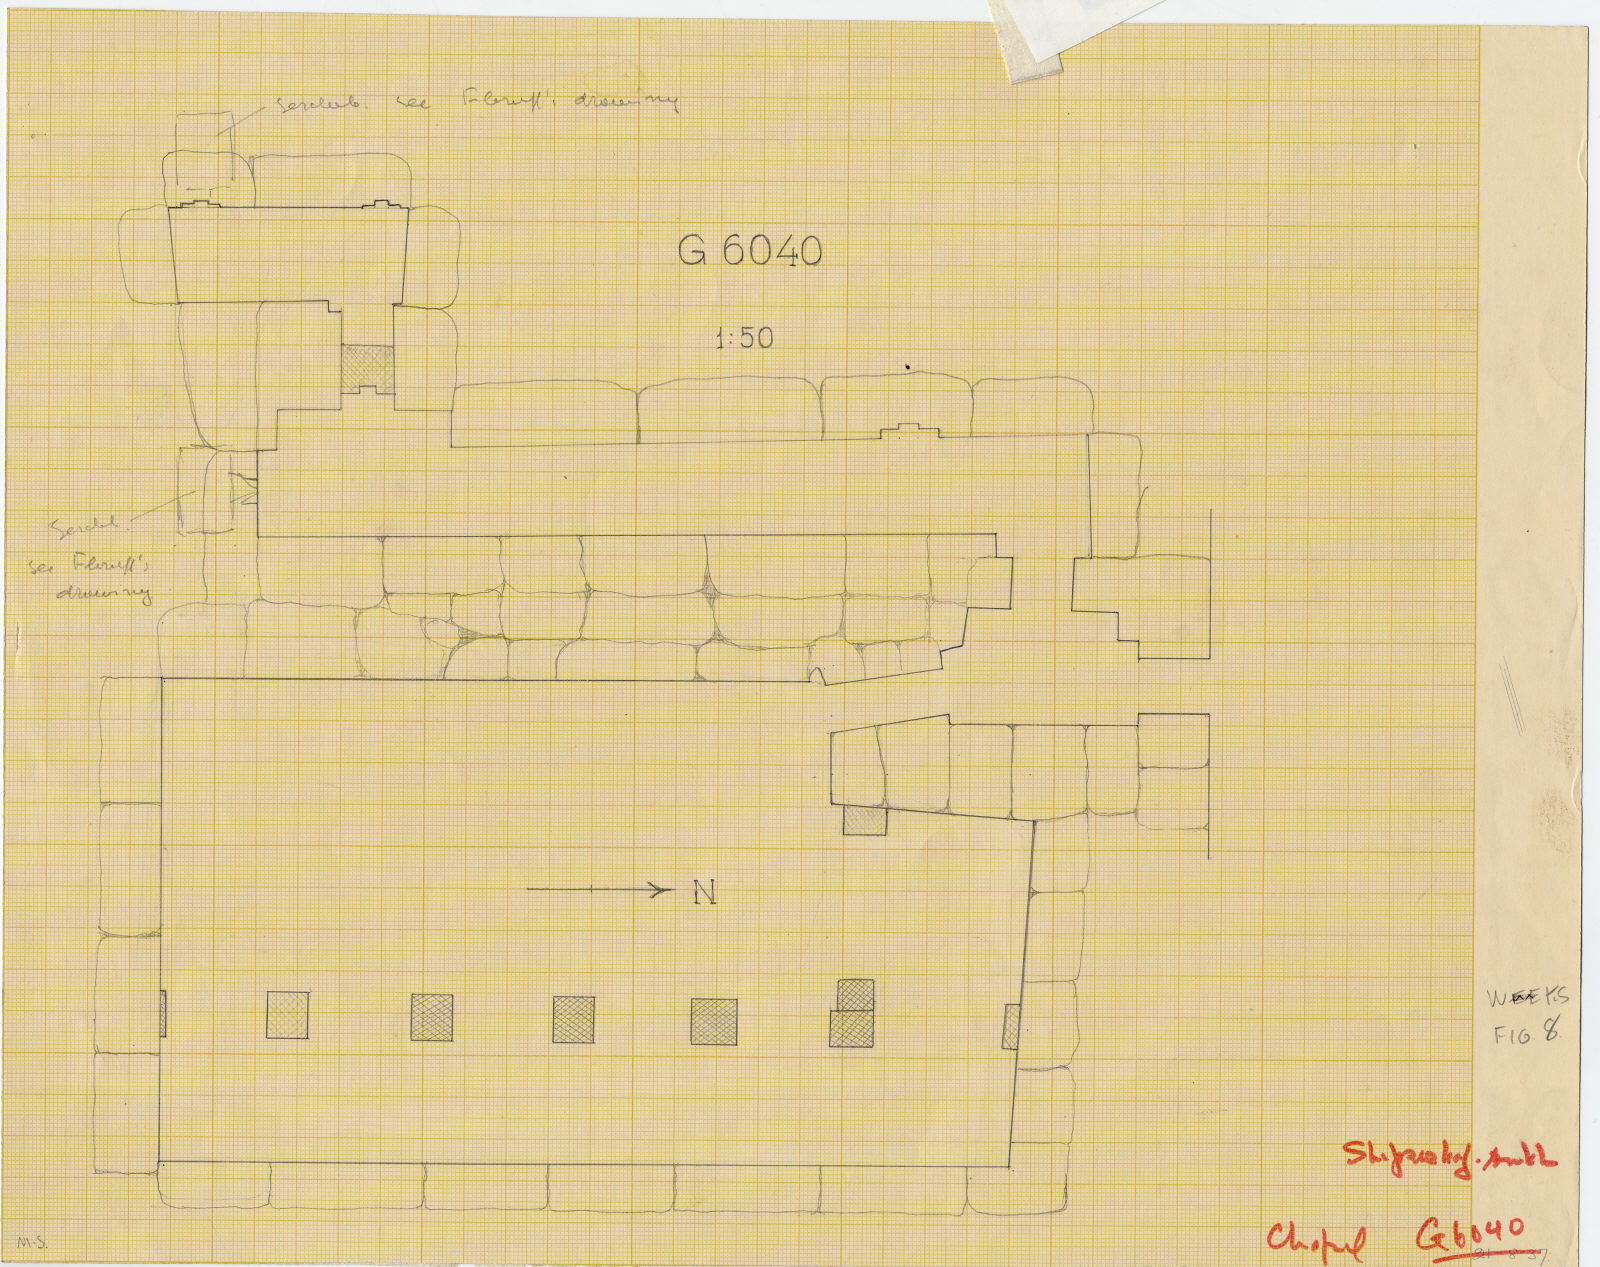 Maps and plans: Sketch plan of G 6040